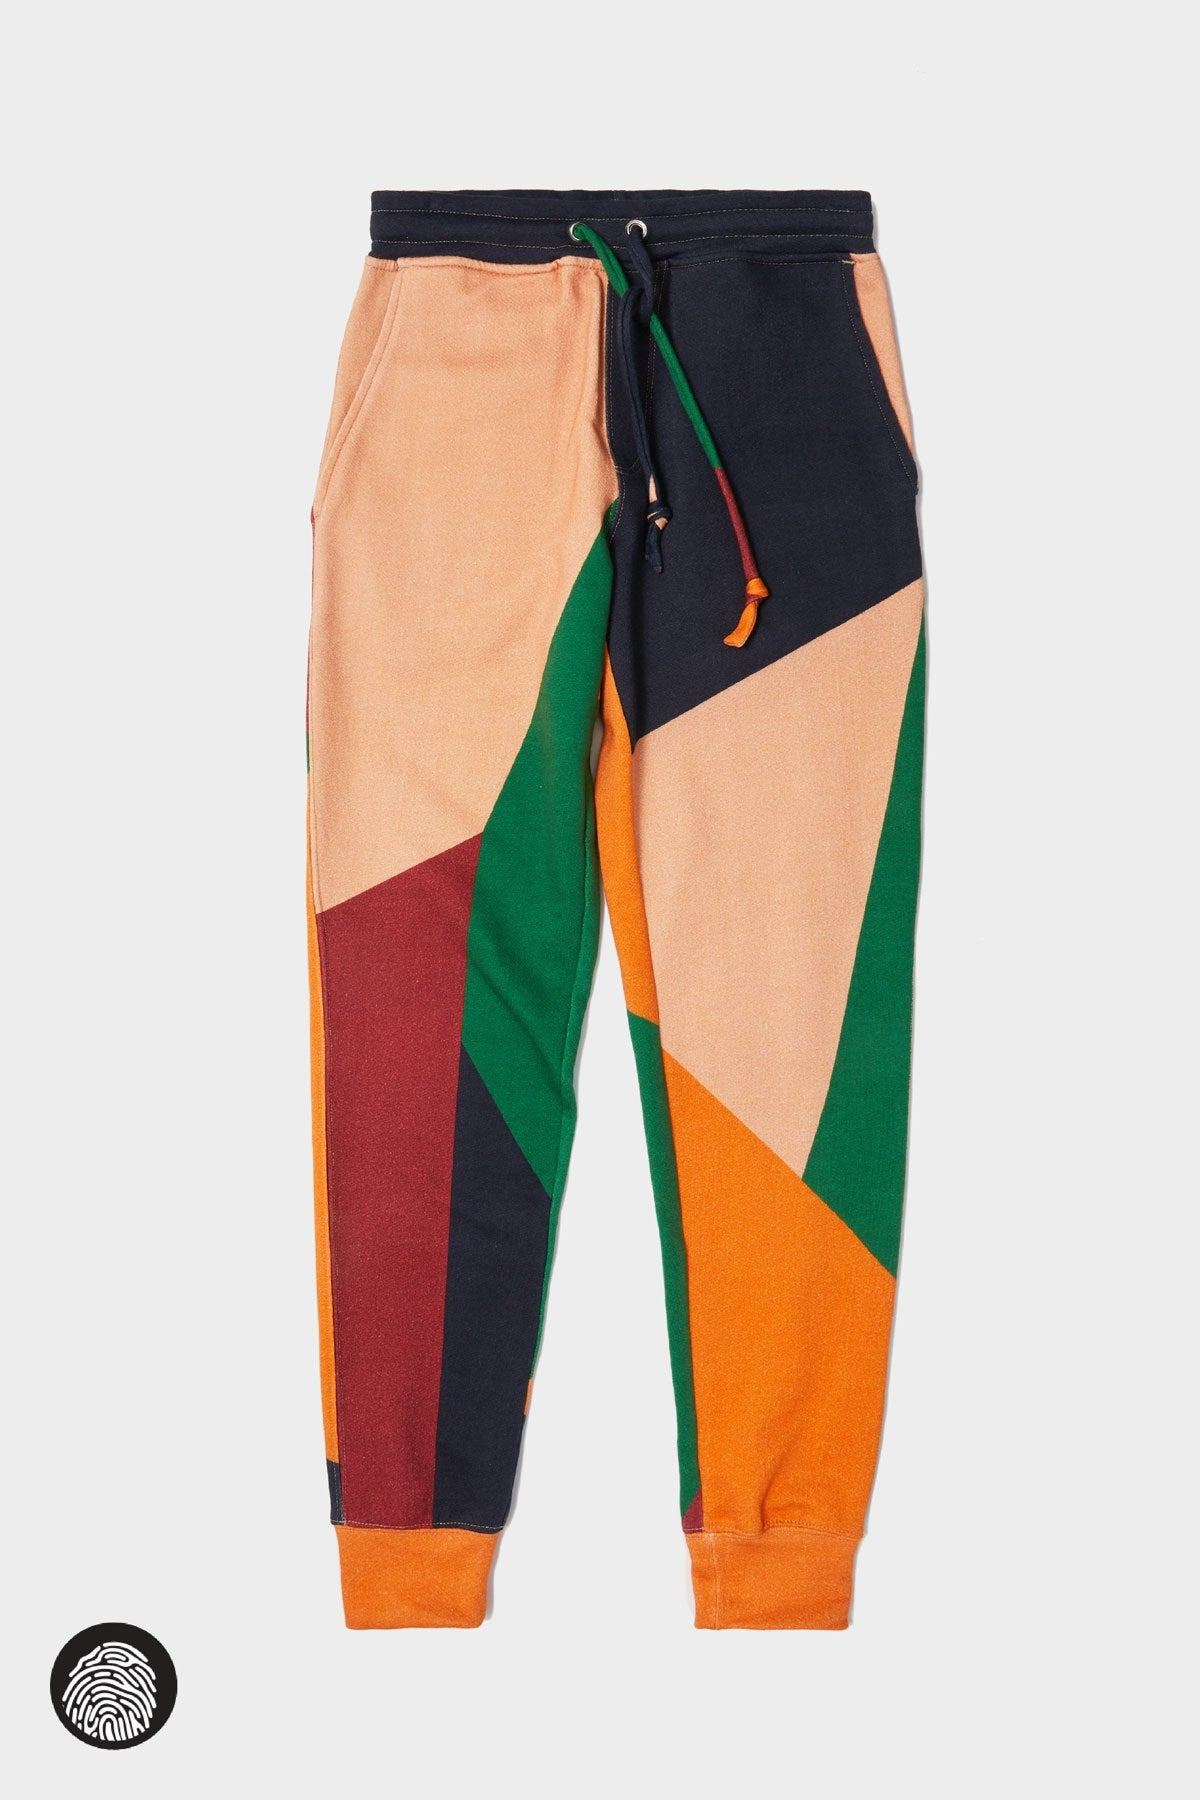 BASIC JOGGER / PLACEMENT COLORBLOCK | Megan Renee